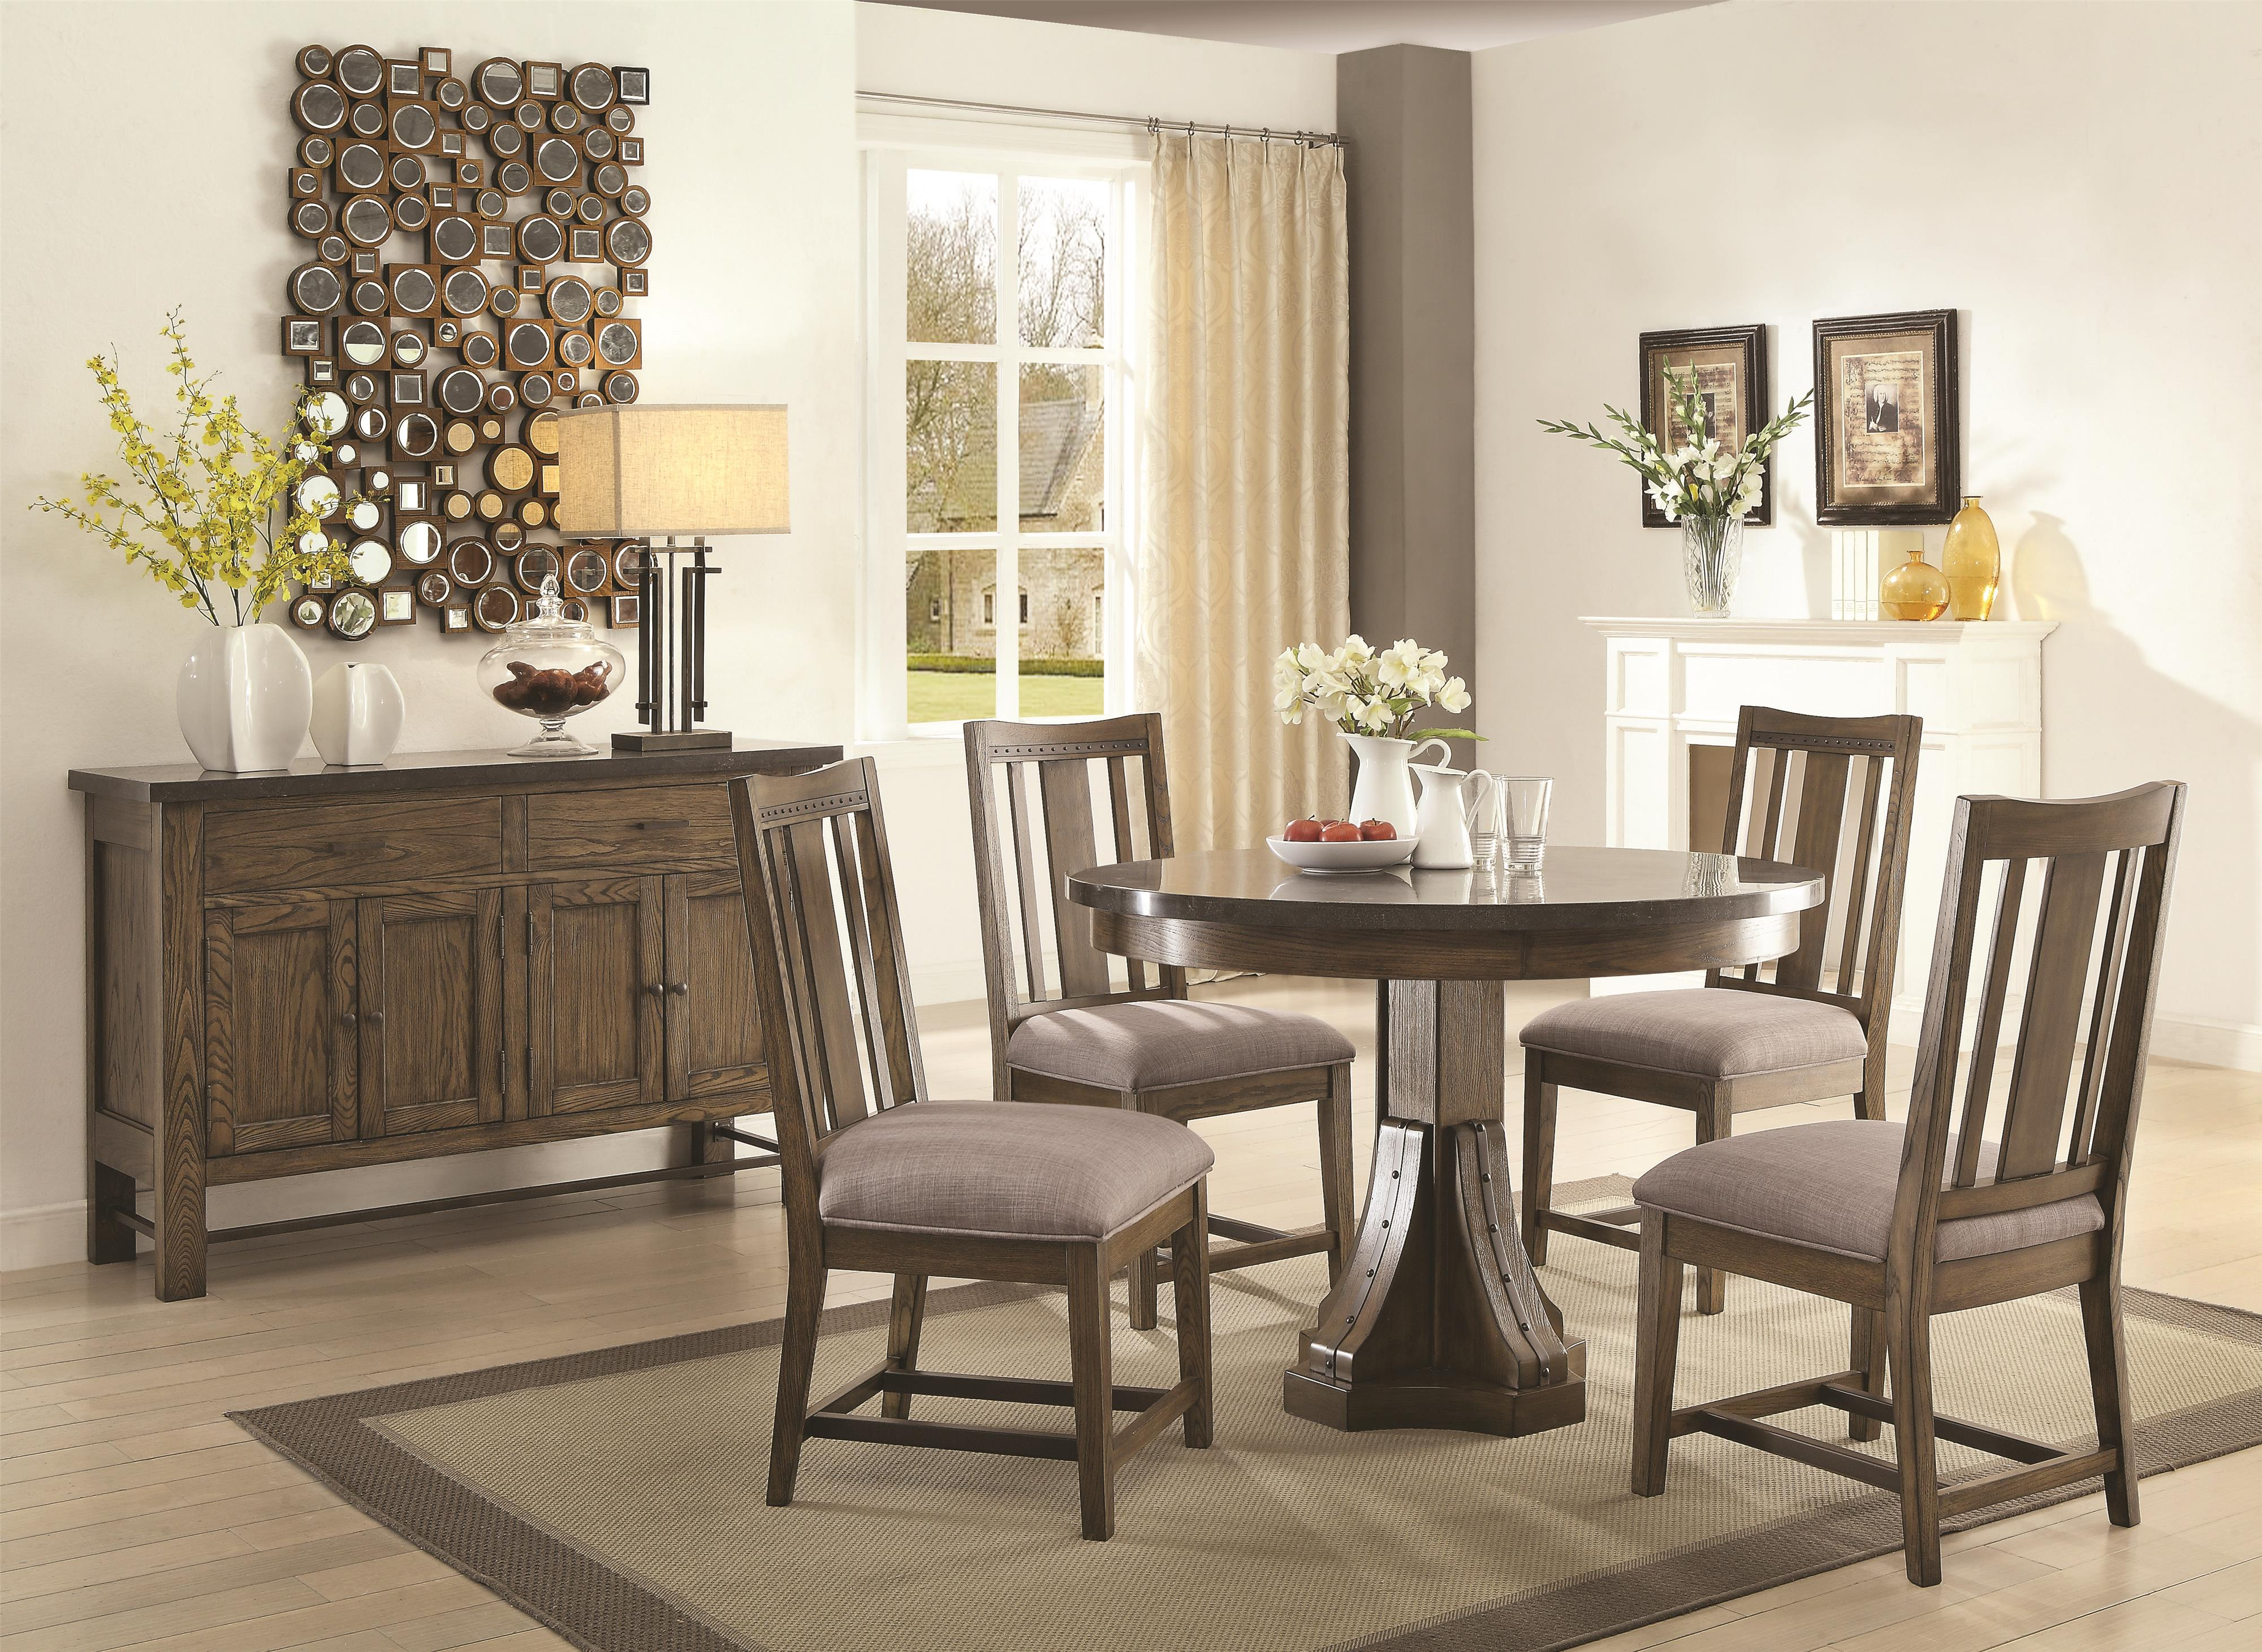 Coaster Willowbrook Rustic Industrial Round Dining Table With - Living room and dining room sets